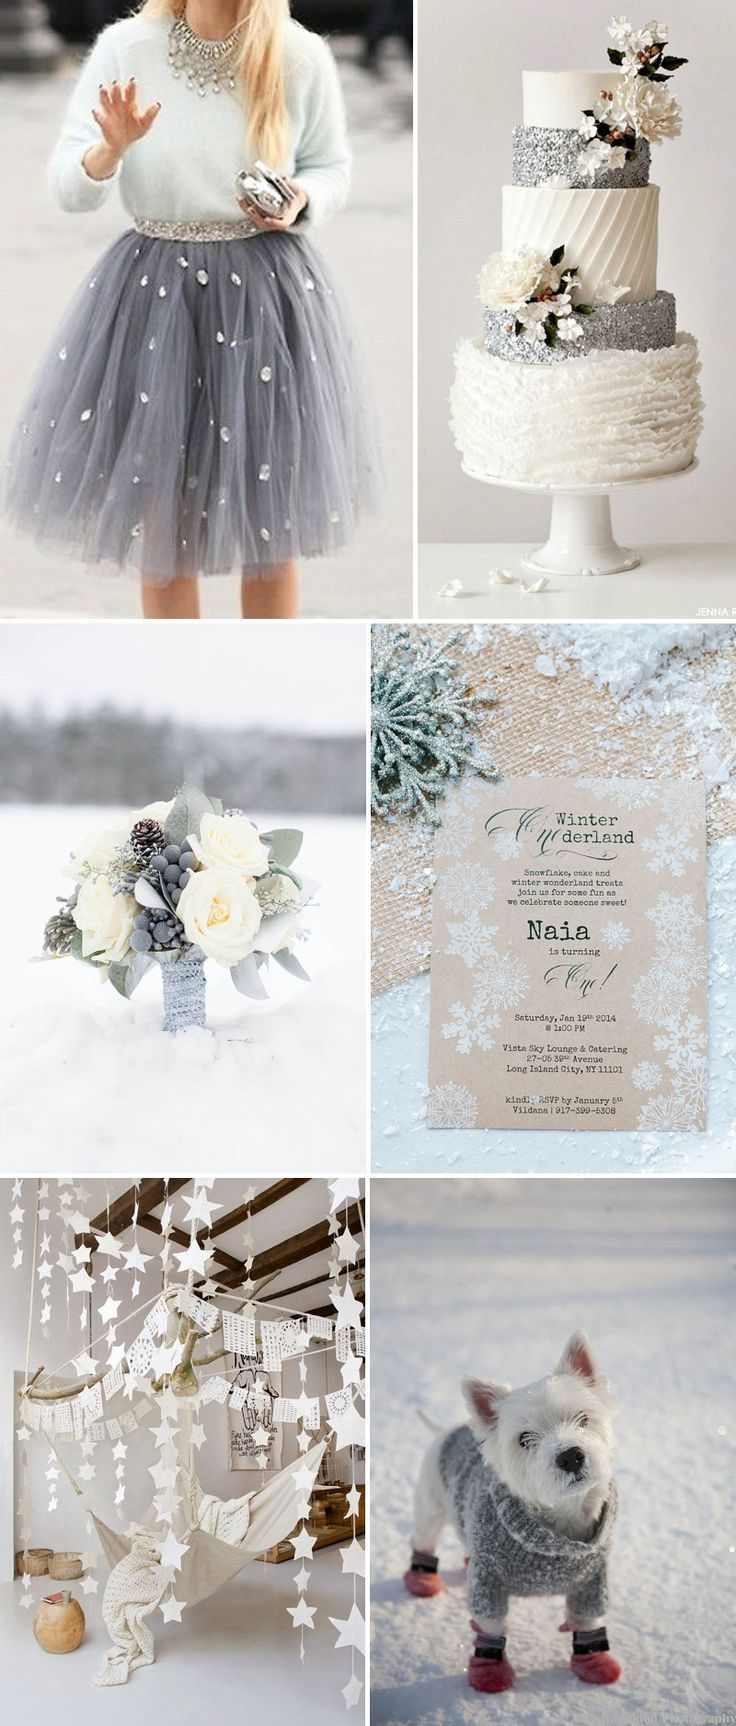 The Sparkle Of Winter Frost. | http://www.rockmywedding.co.uk/the-sparkle-of-winter-frost/